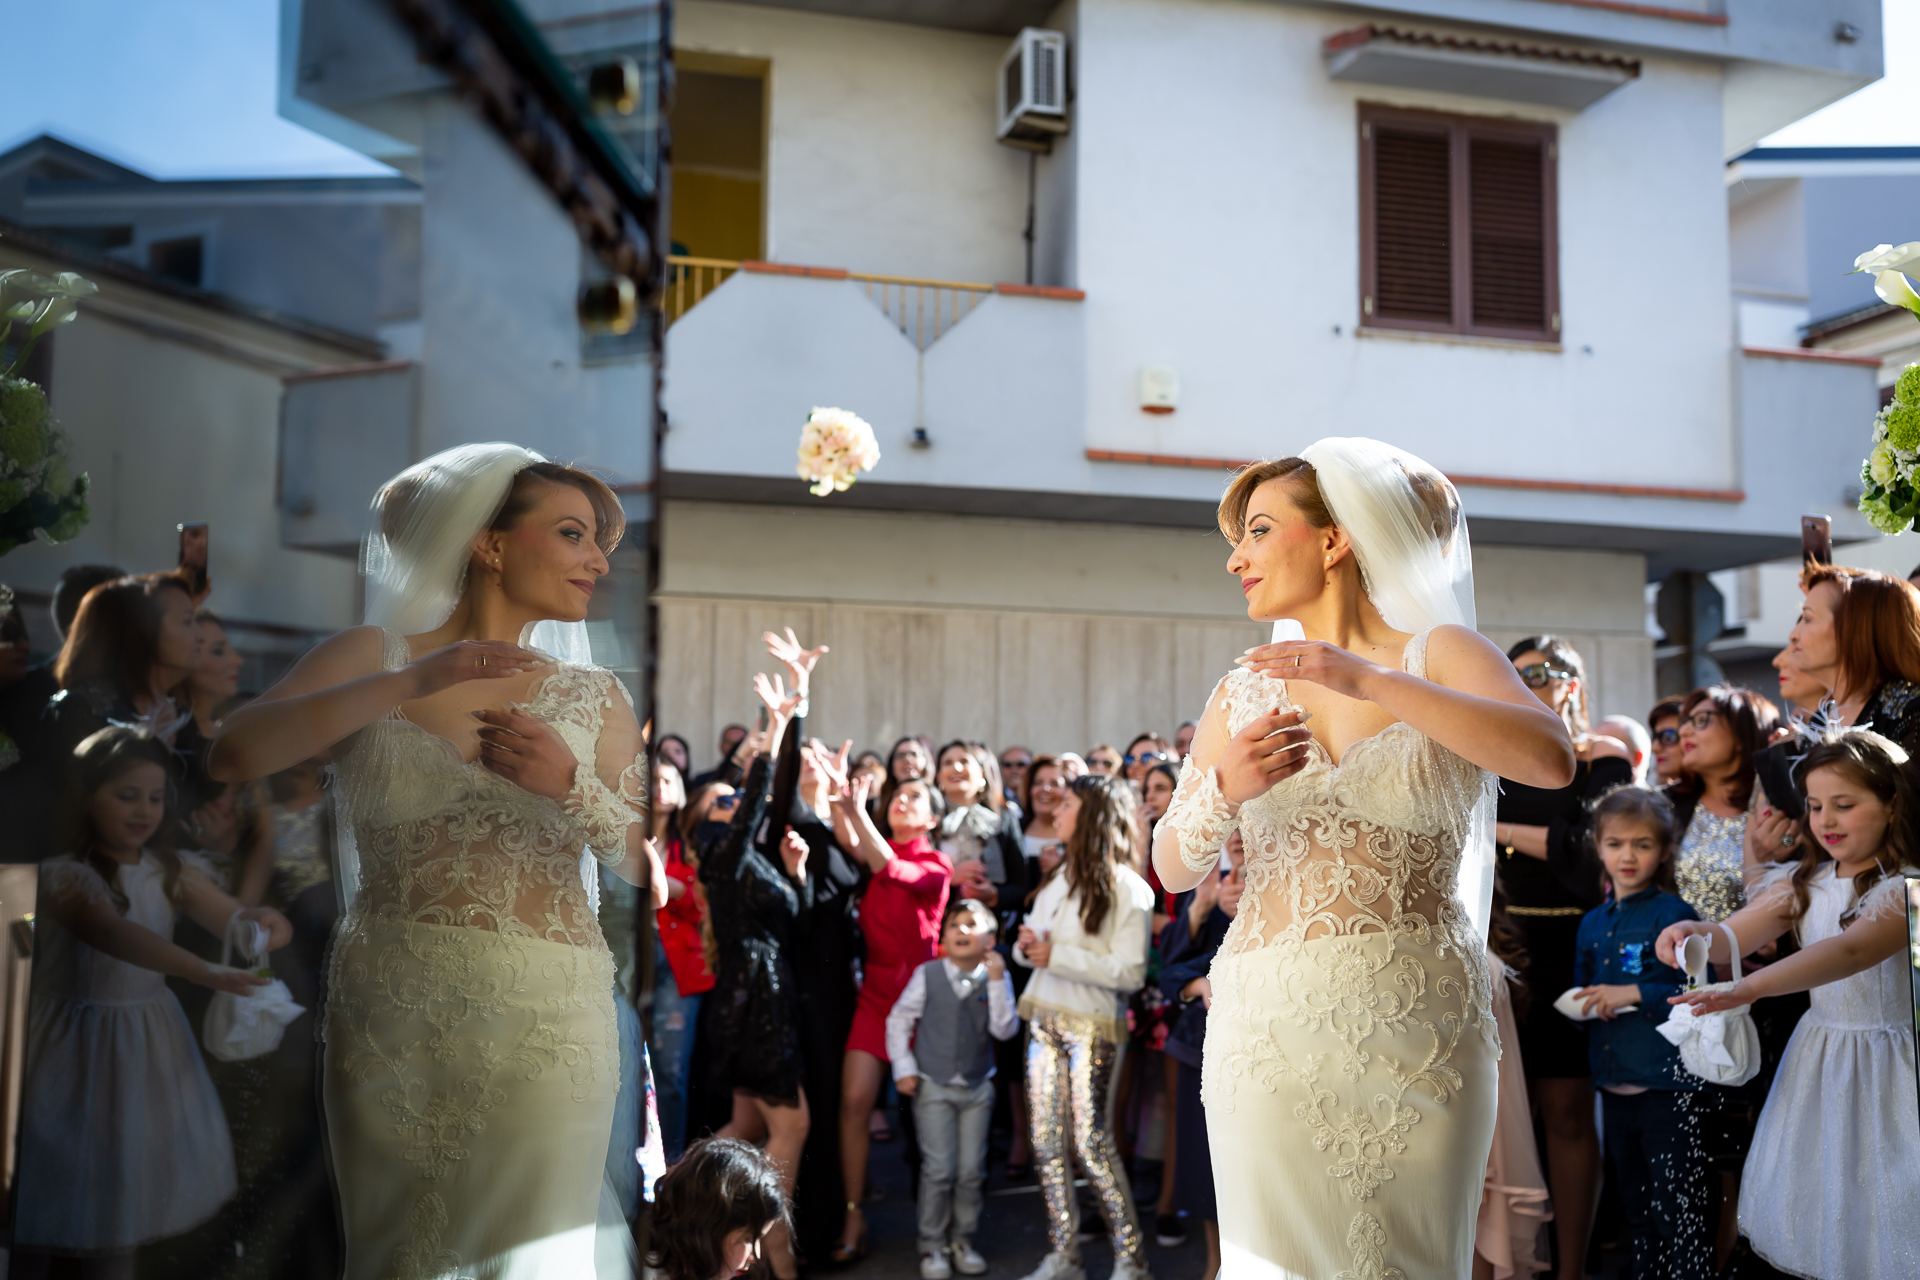 The Best Wedding Photojournalism - The bride turns toward her reflection as she tosses her bouquet over her shoulder in this wedding photo.